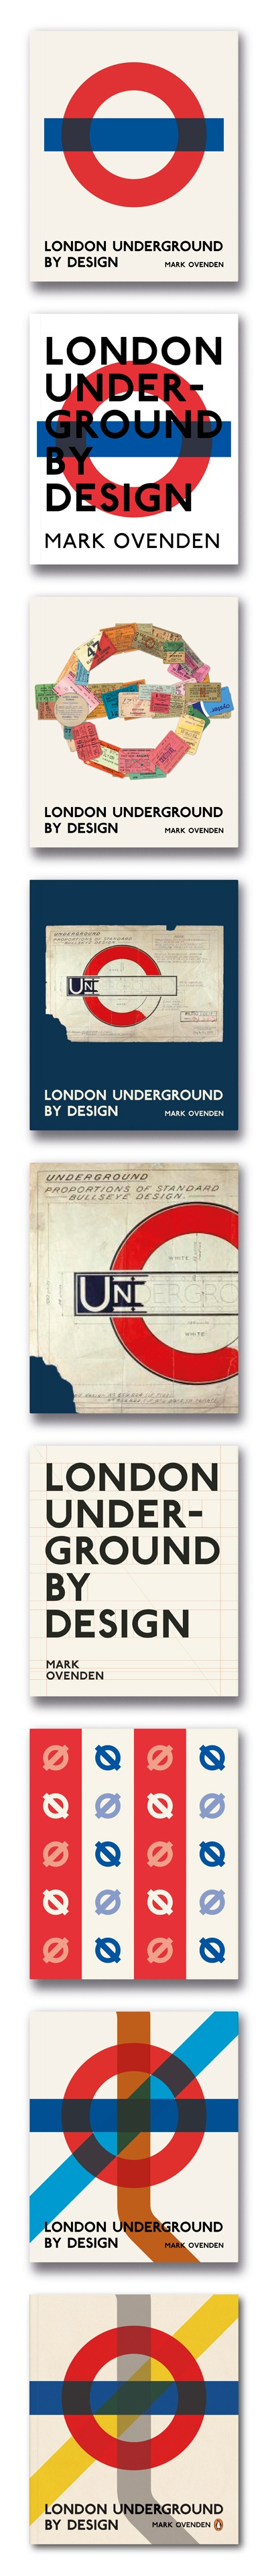 Had a lot of fun designing a cover for #LondonUnderground by #Design. Here's a few work-in-progress shots.